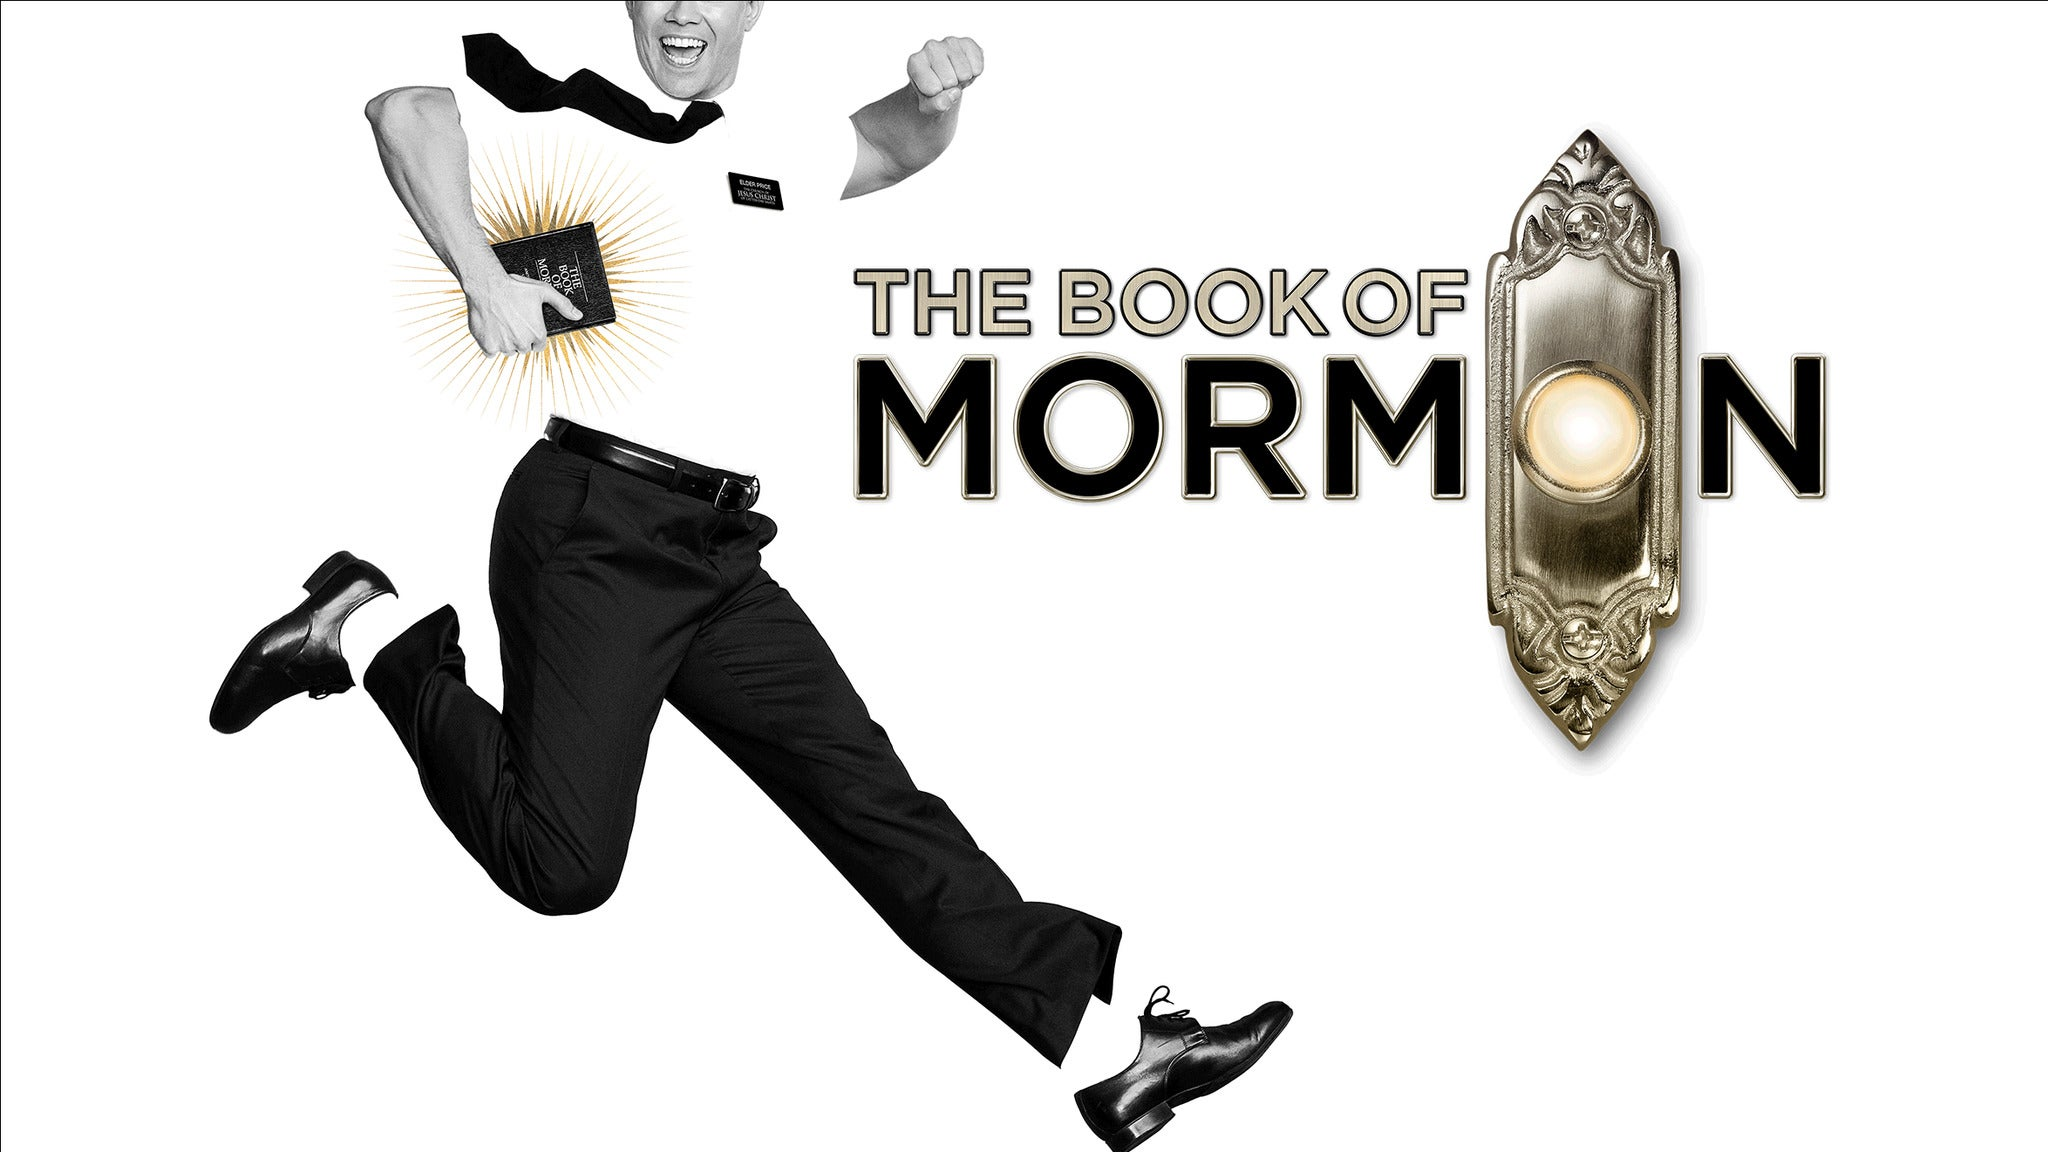 The Book of Mormon (Touring) - Fresno, CA 93721